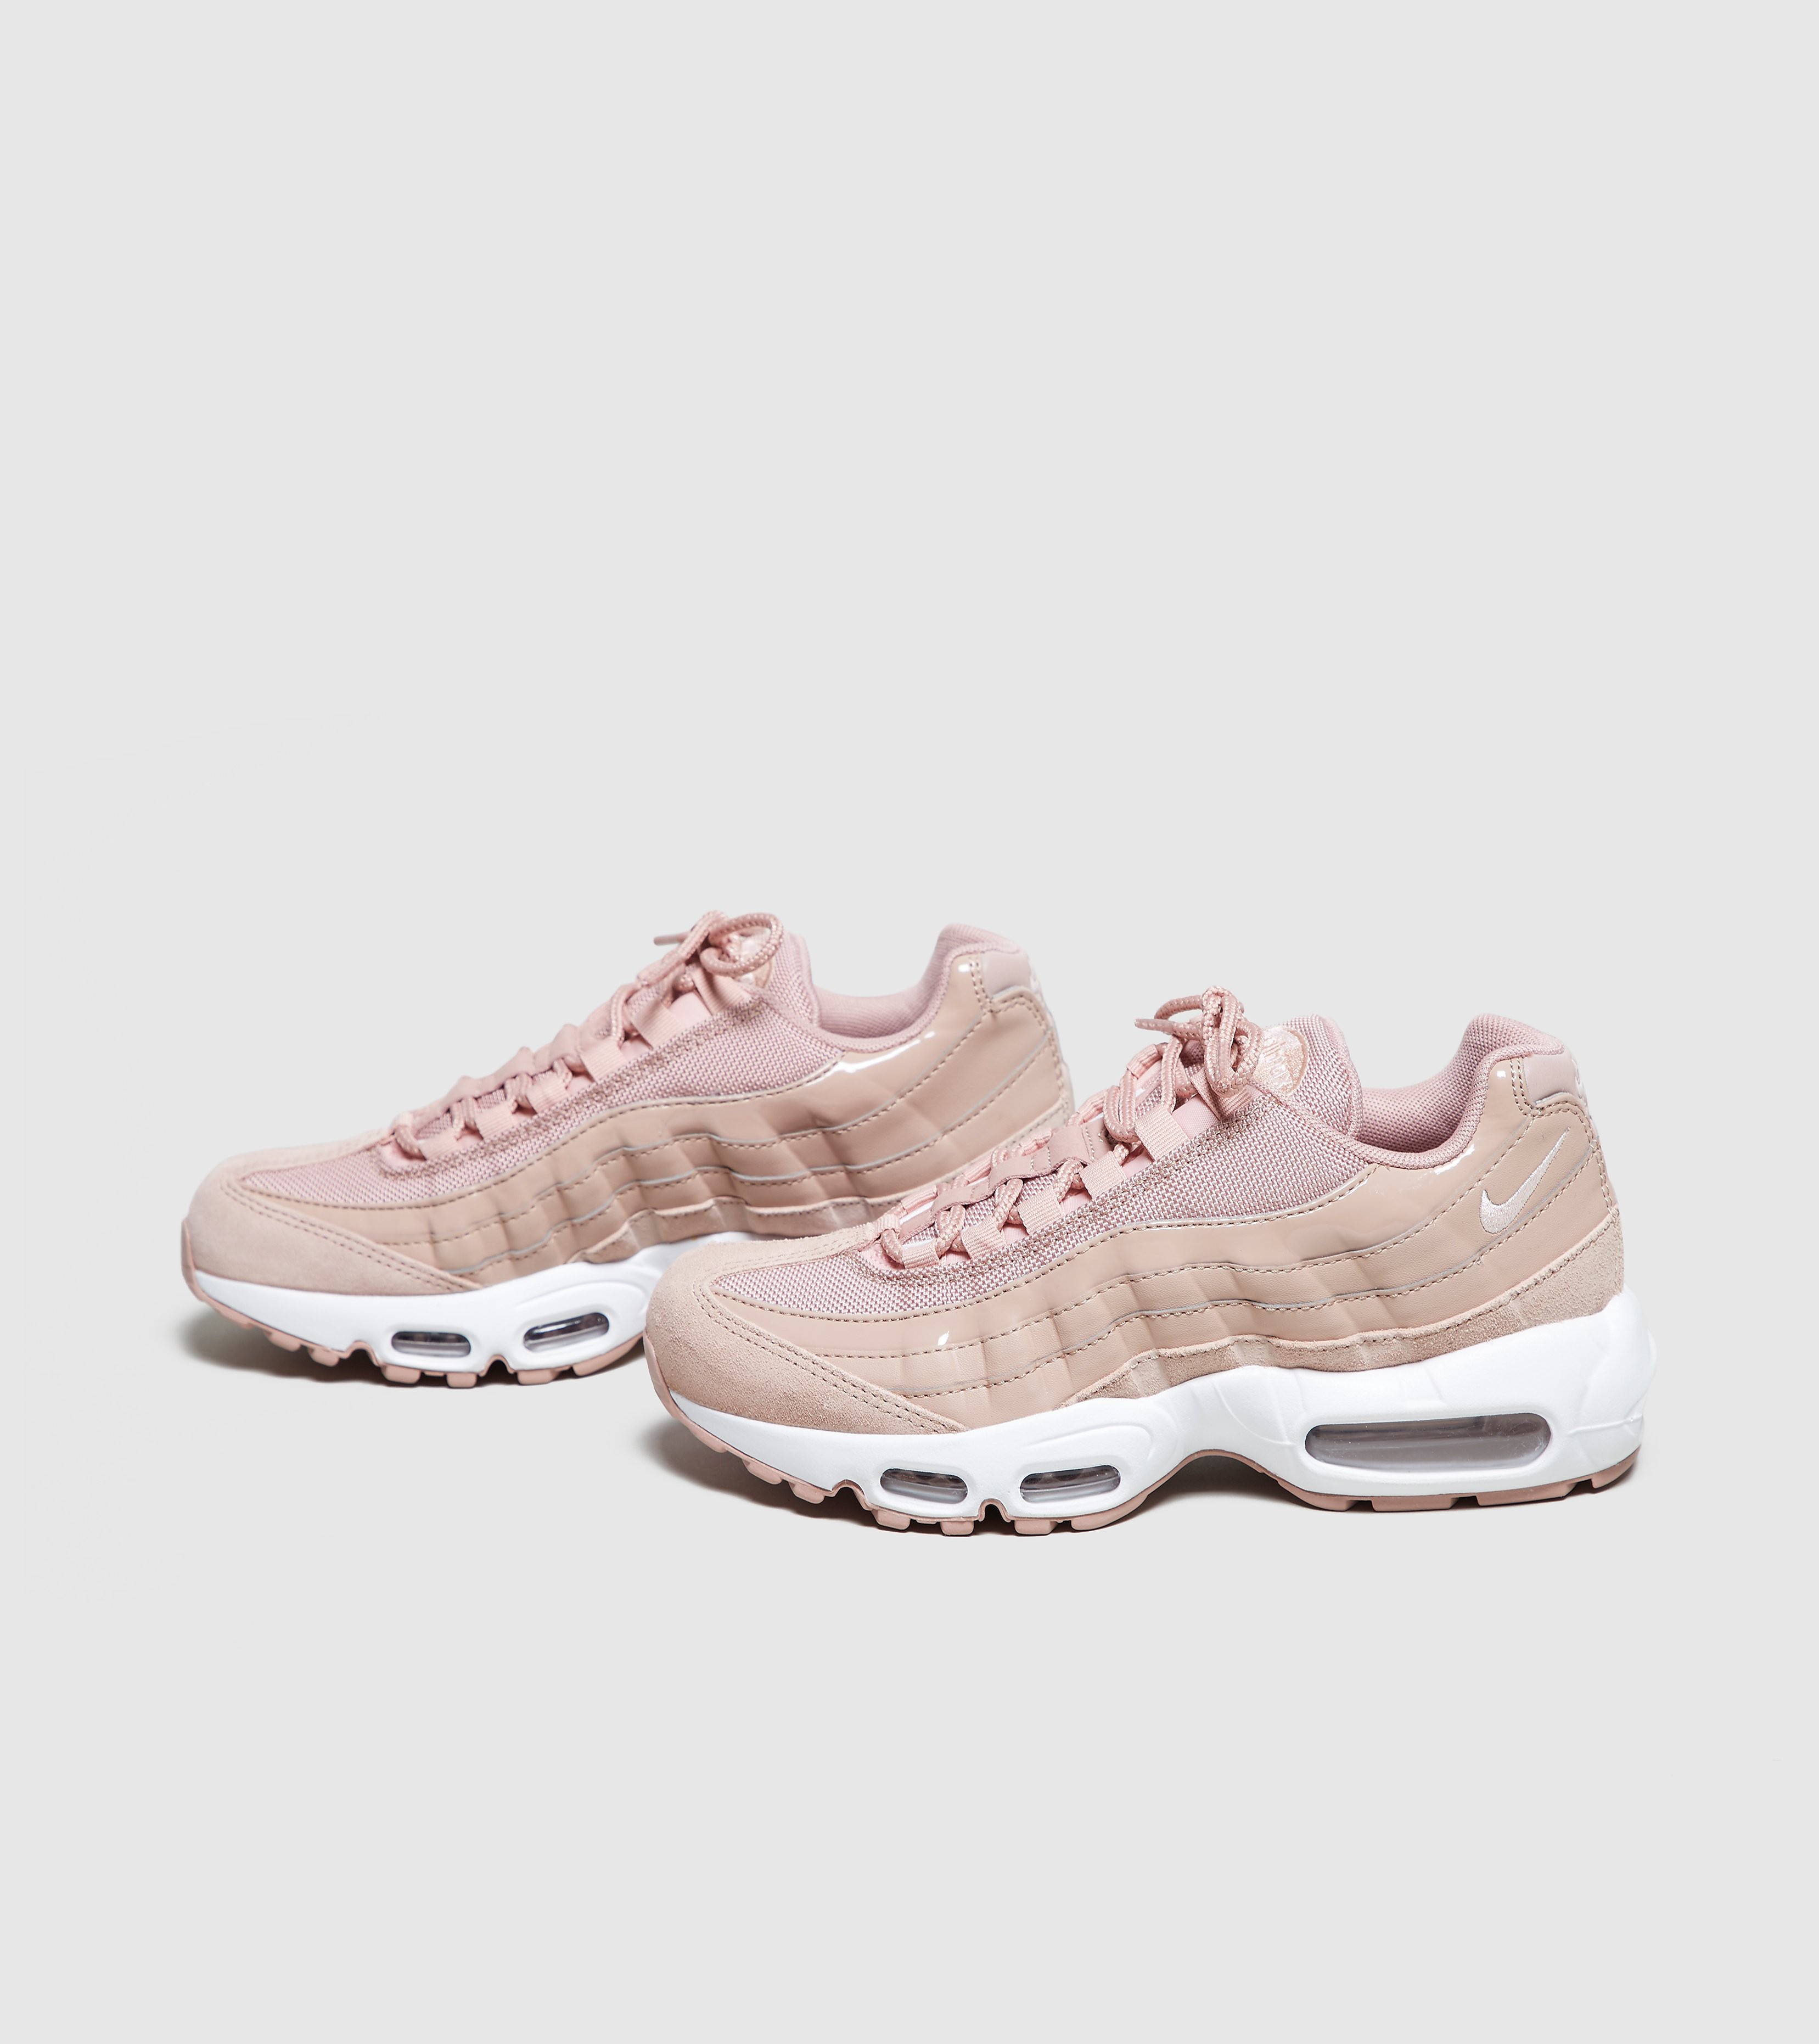 Nike Air Max 95 Frauen